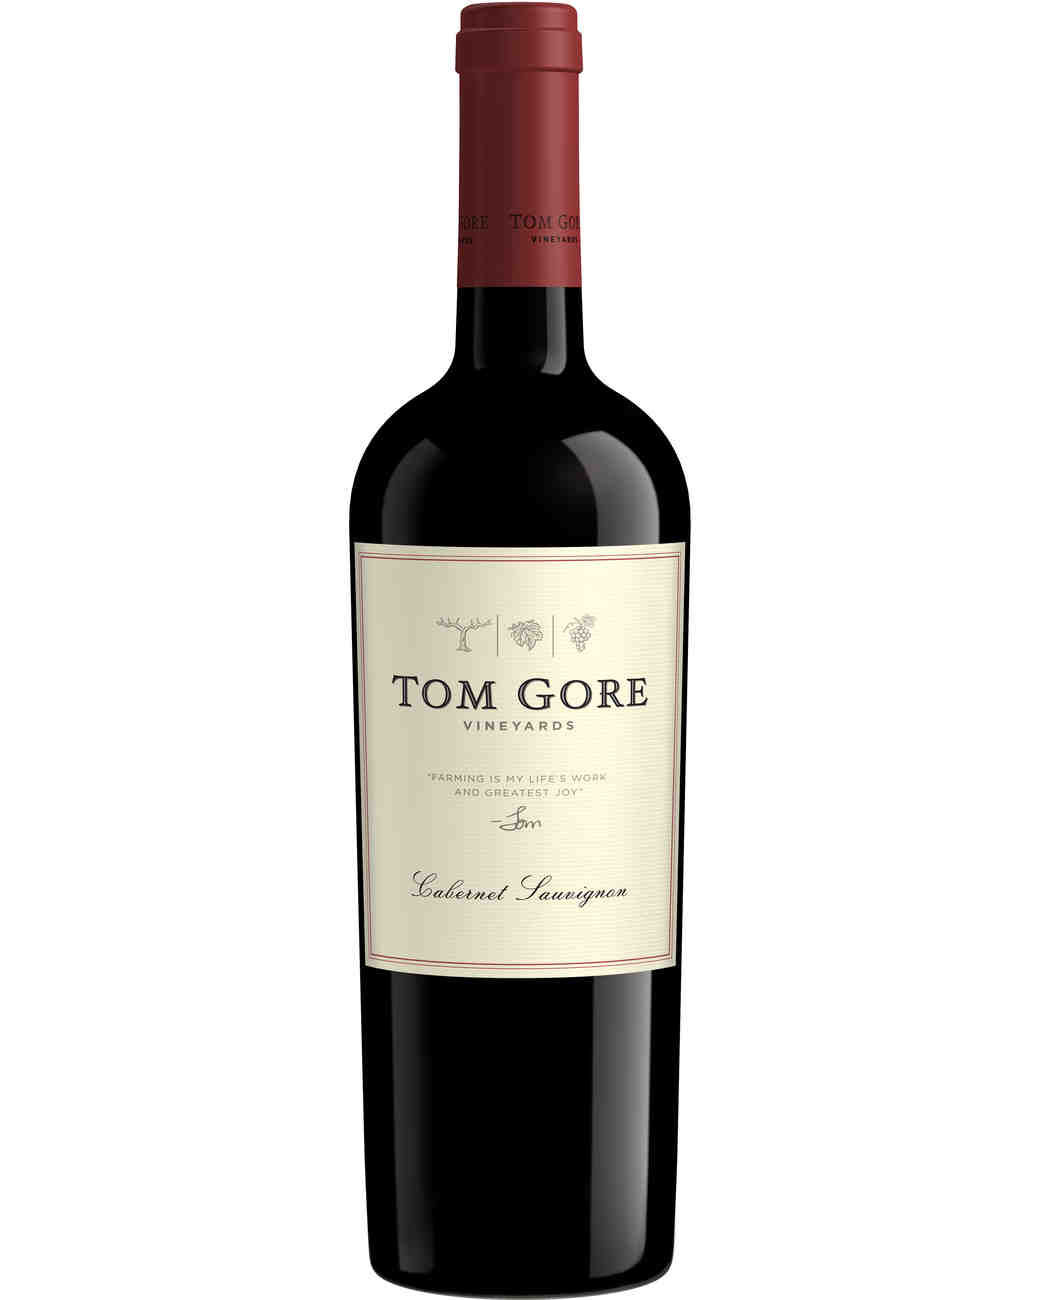 tom gore red wine